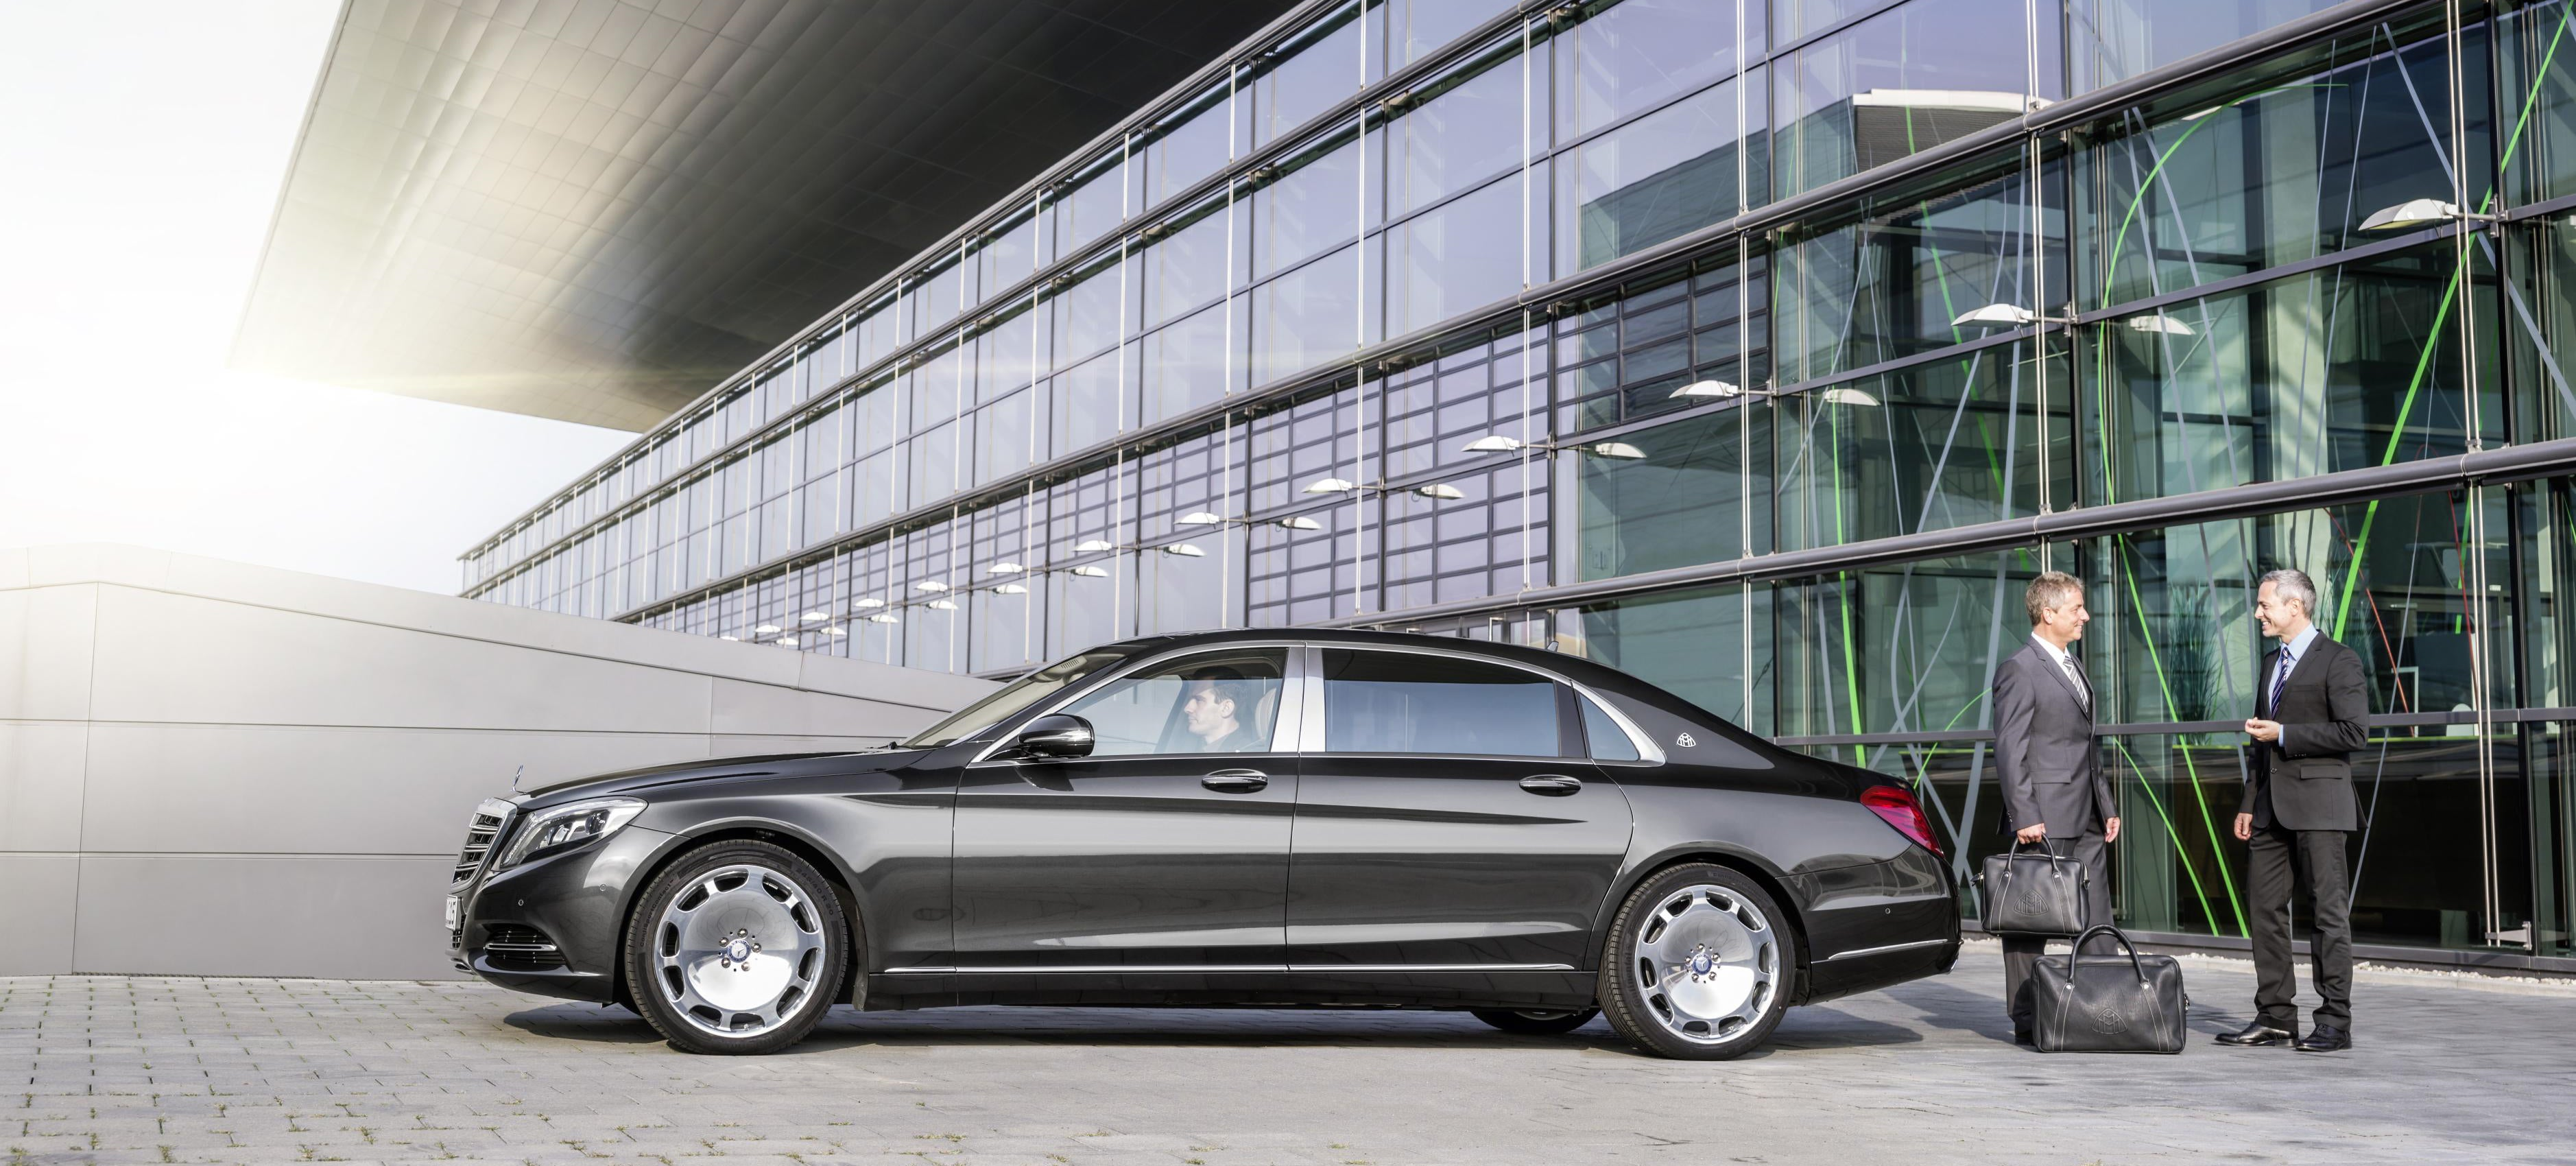 Maybach is back meet the 200 000 mercedes maybach s class for Mercedes benz s550 maybach